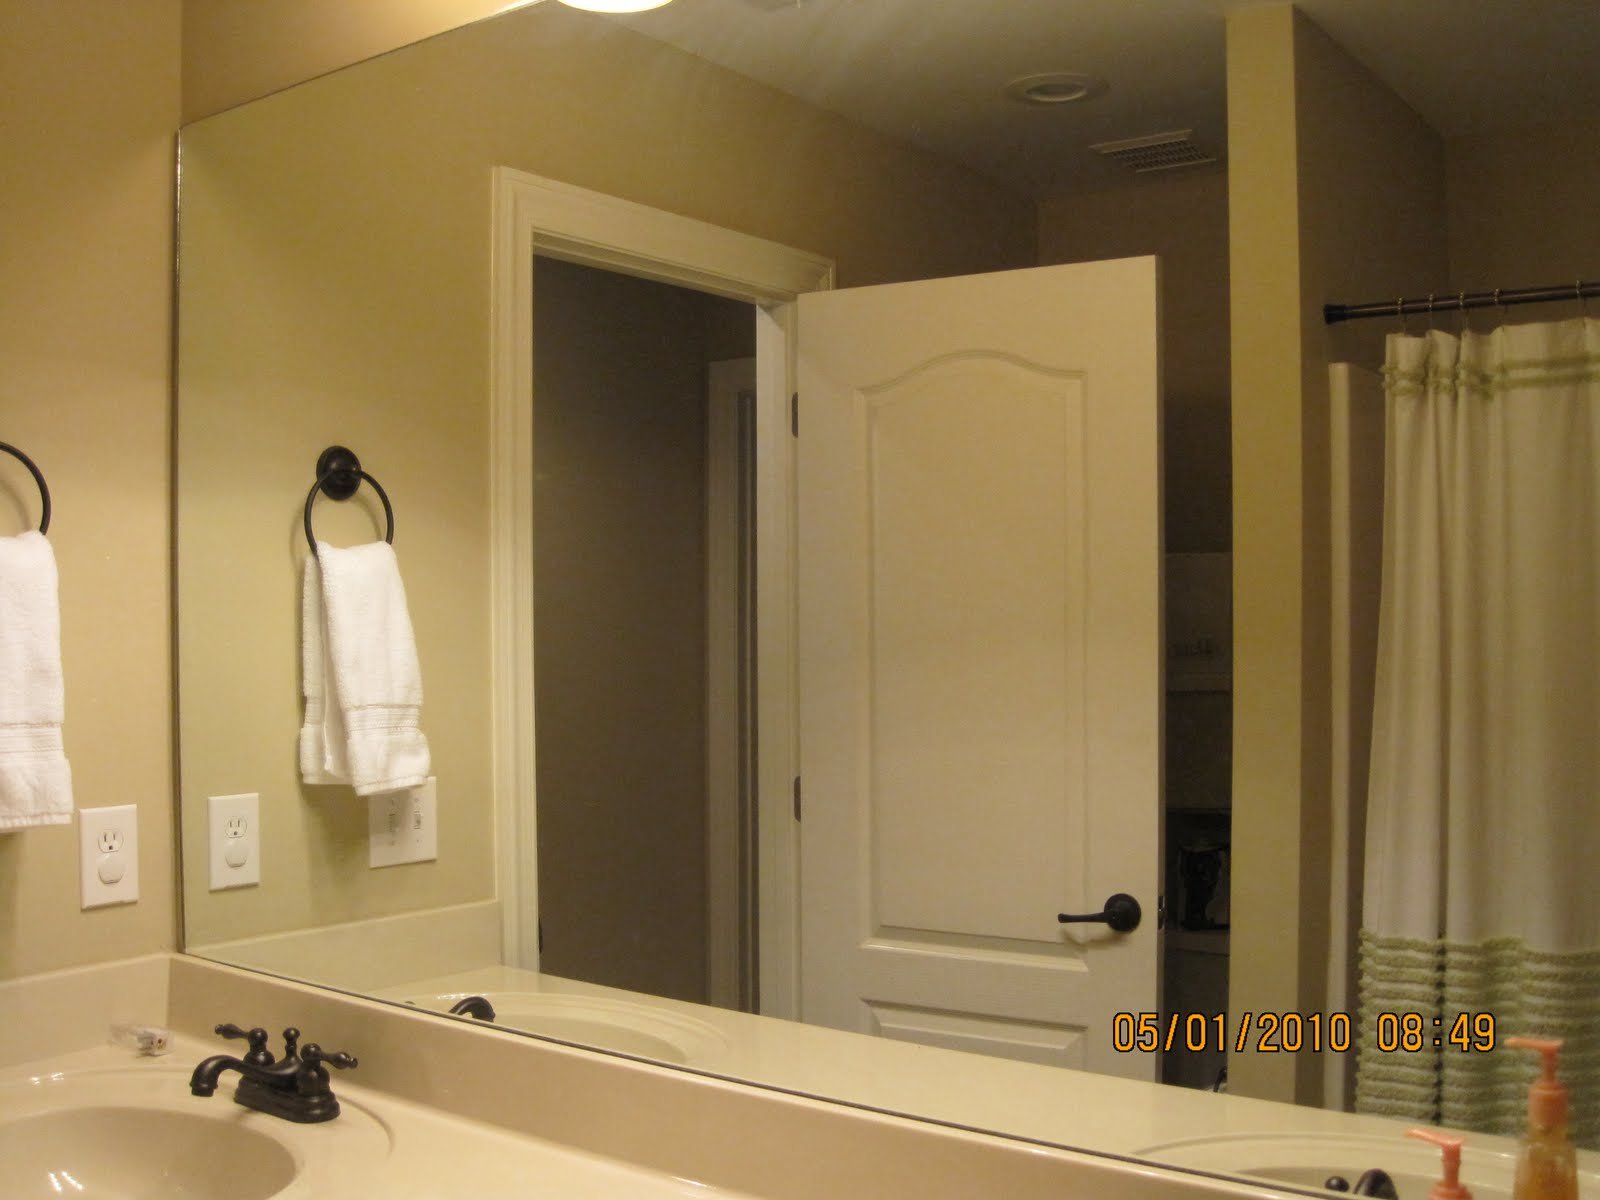 cabinets white frames with mirror mirrors x ideas framed shelf bathroom complete example dimensions regardto